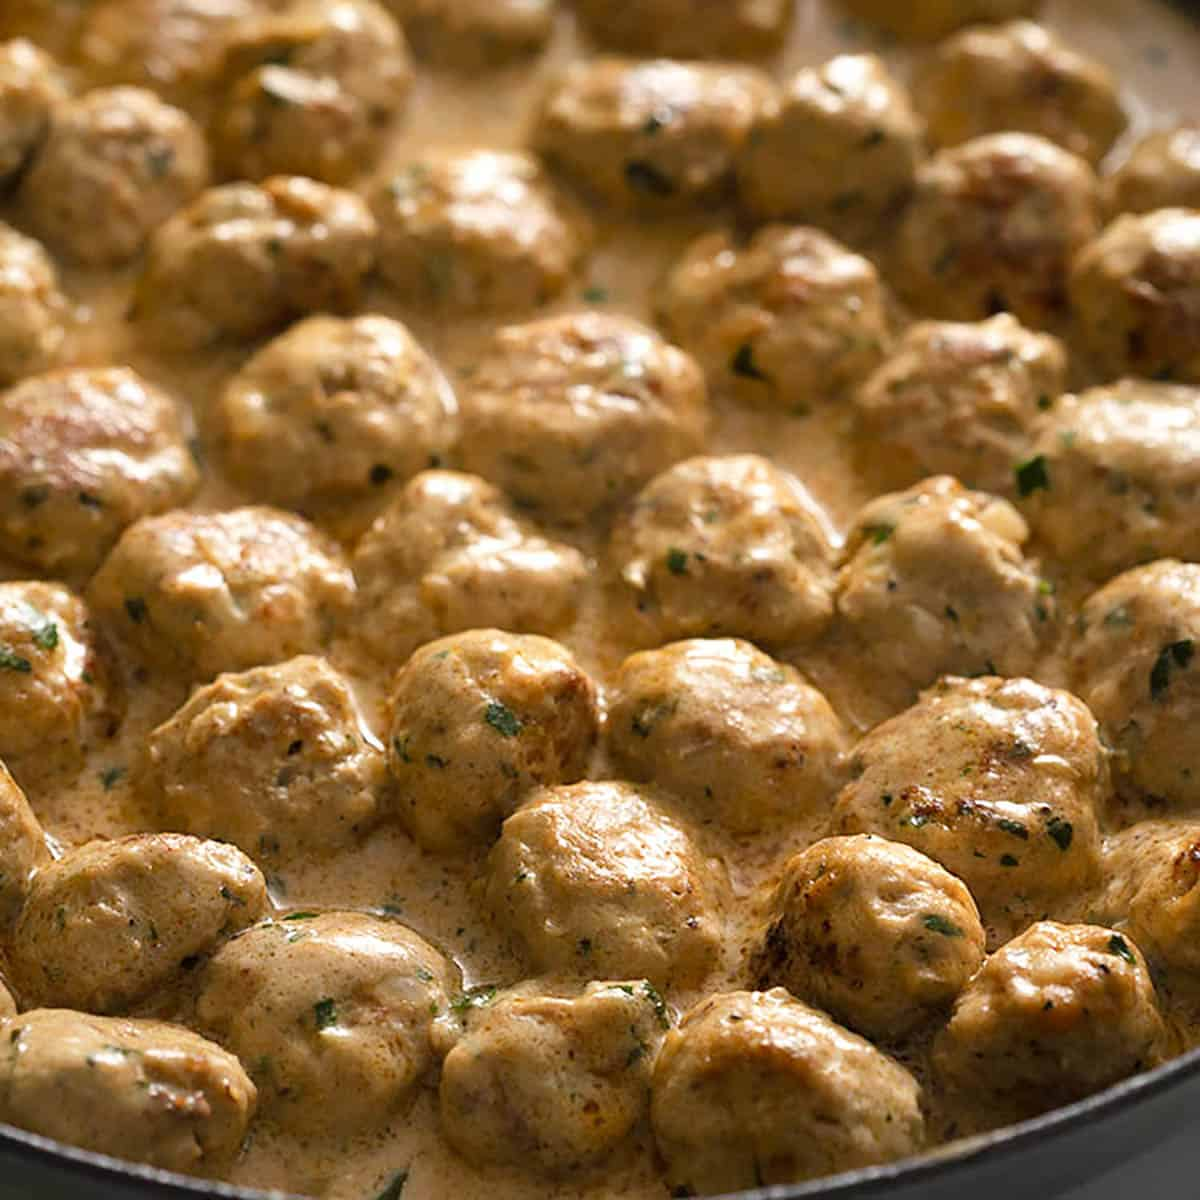 A large iron pan of Swedish meatballs